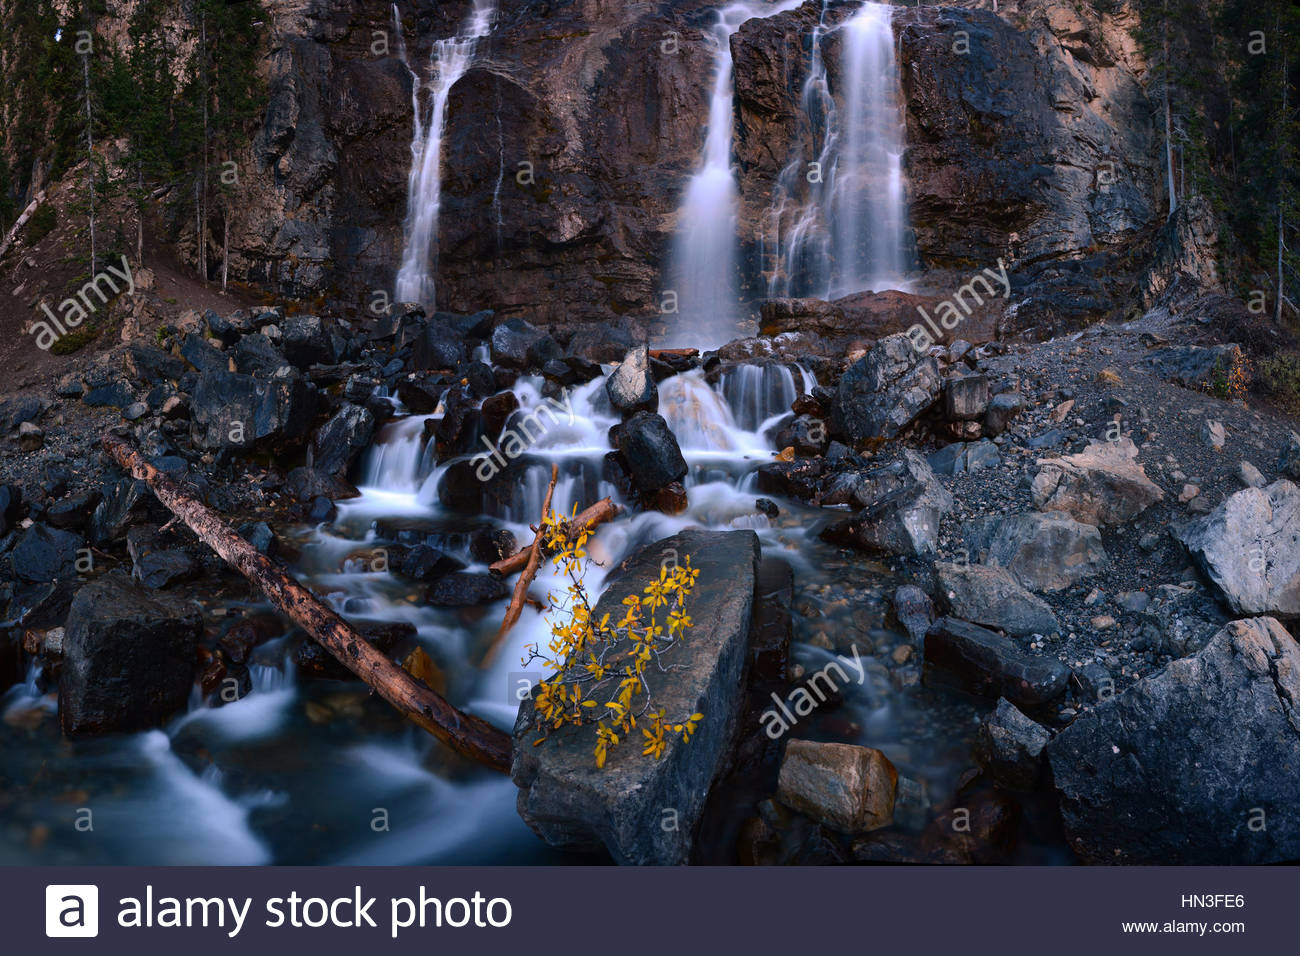 View of Tangle Falls in Alberta, Canada. - Stock Image